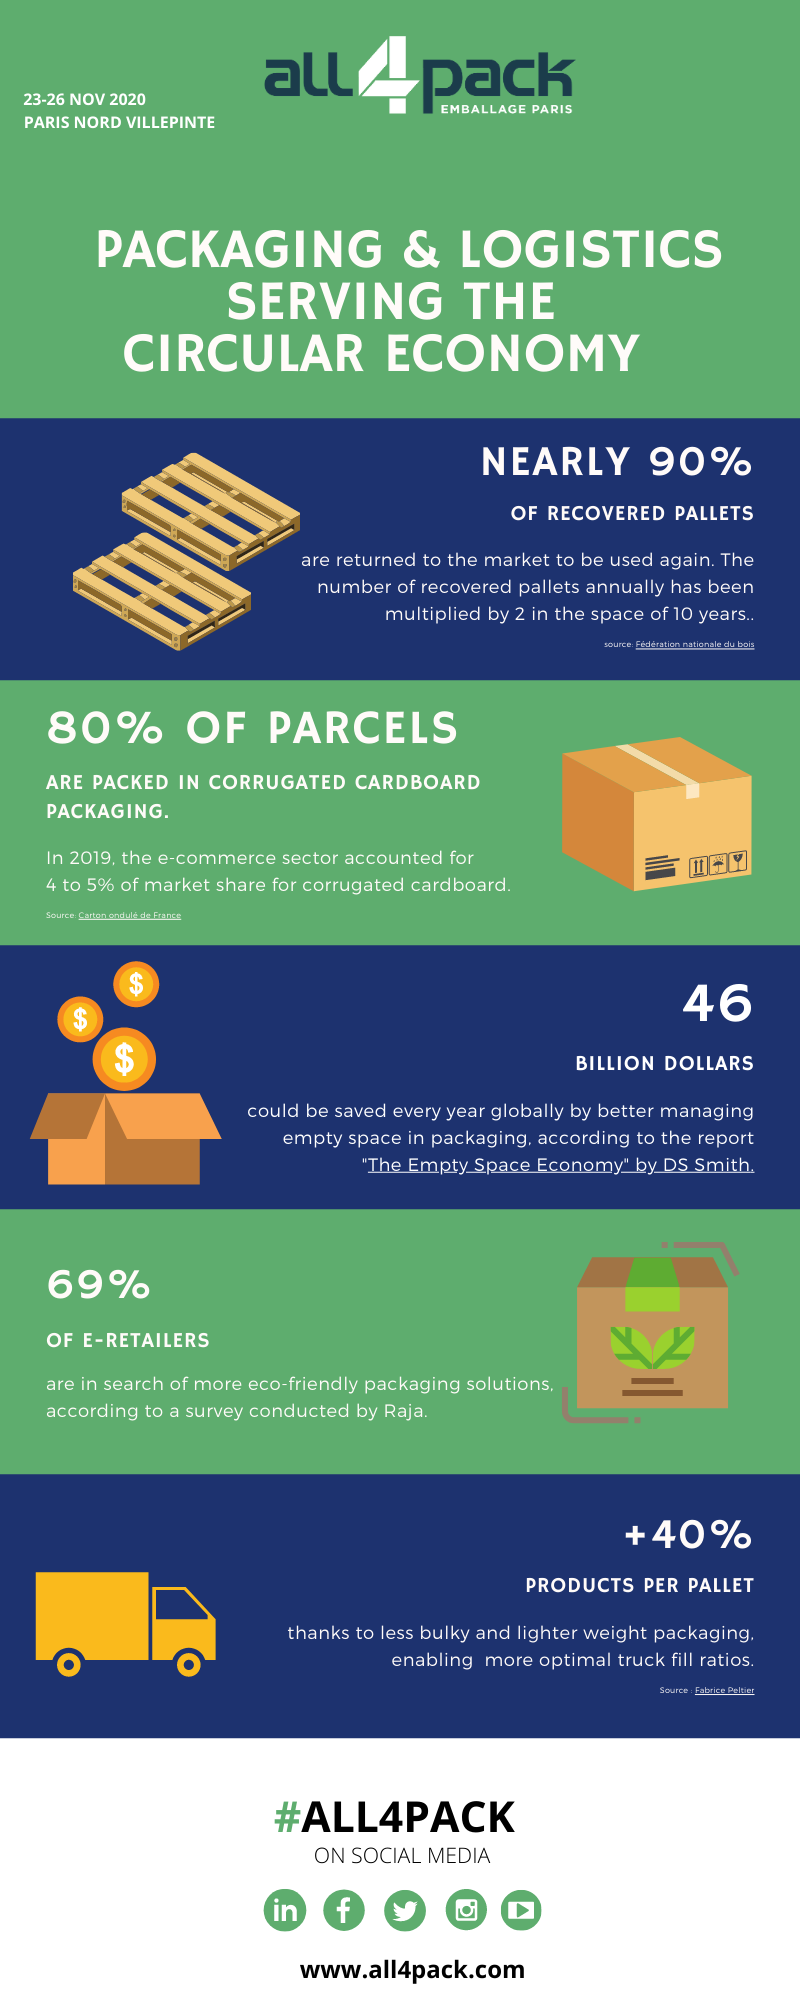 Packaging and logistics serving the circular economy